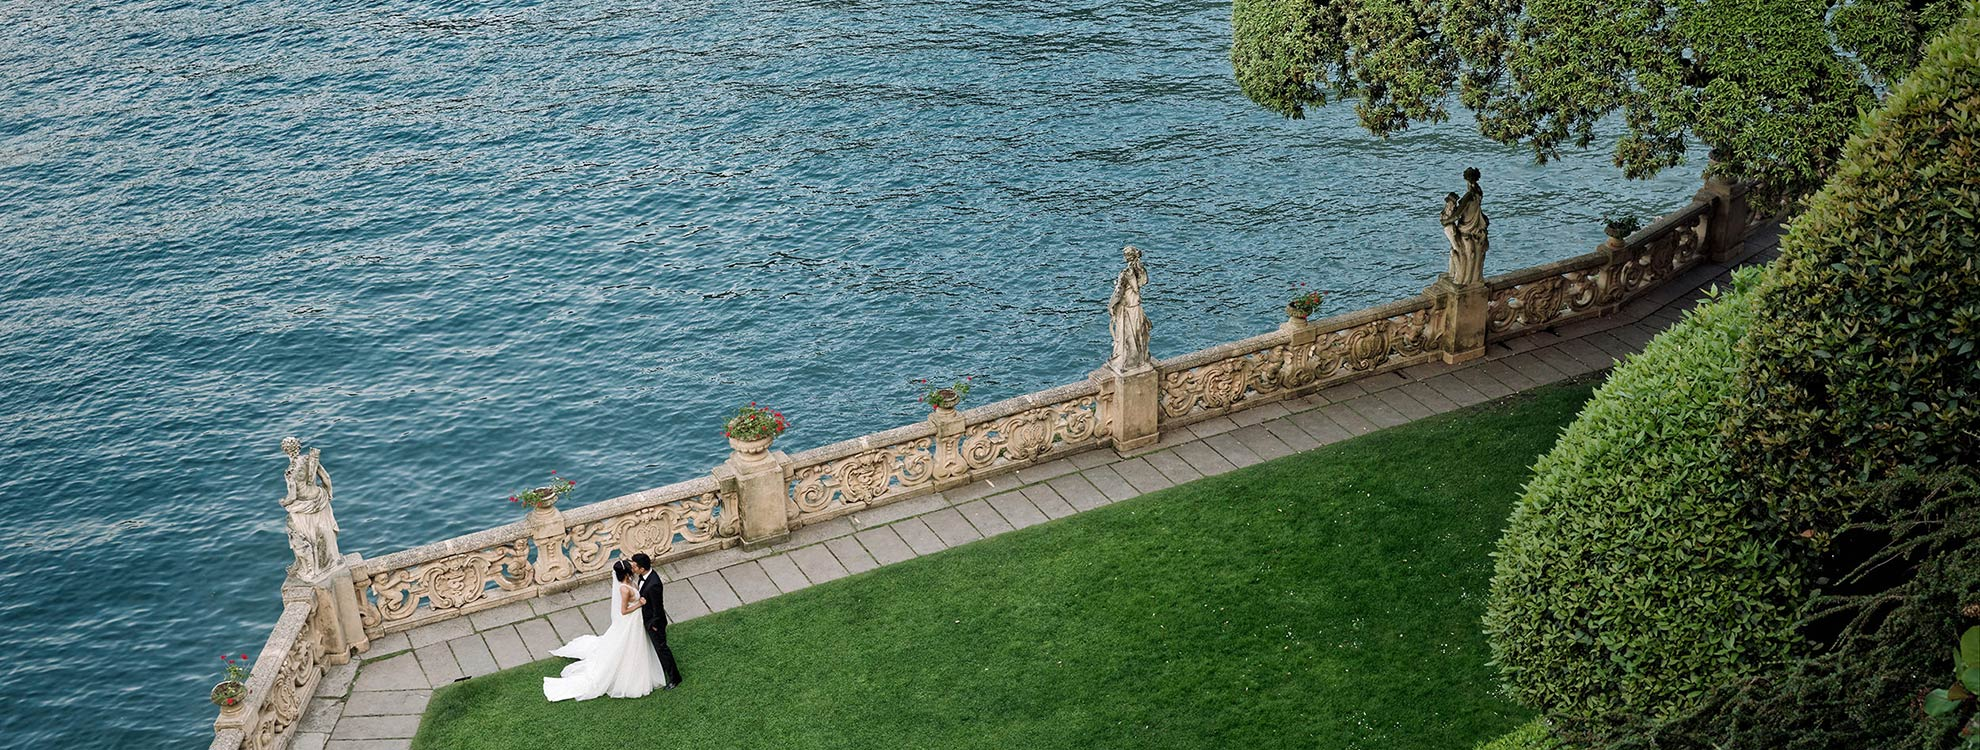 Destination wedding planners in Italy